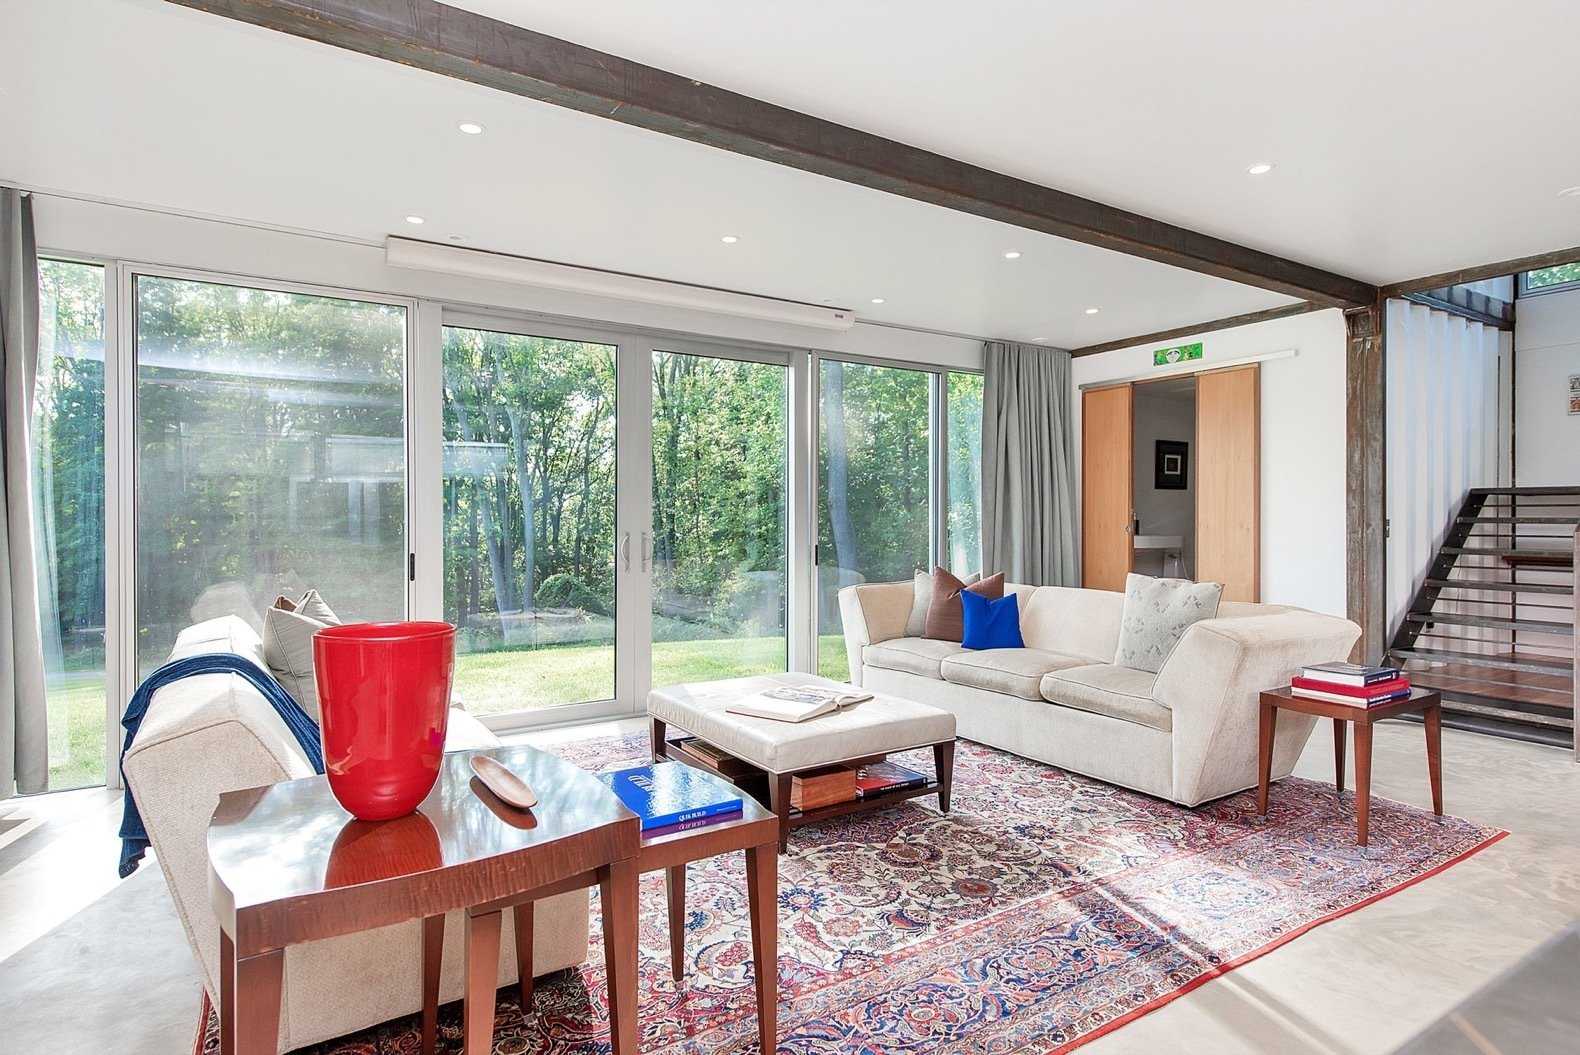 Photo 6 Of 14 In Grab This Dreamy Shipping Container Home For 875k